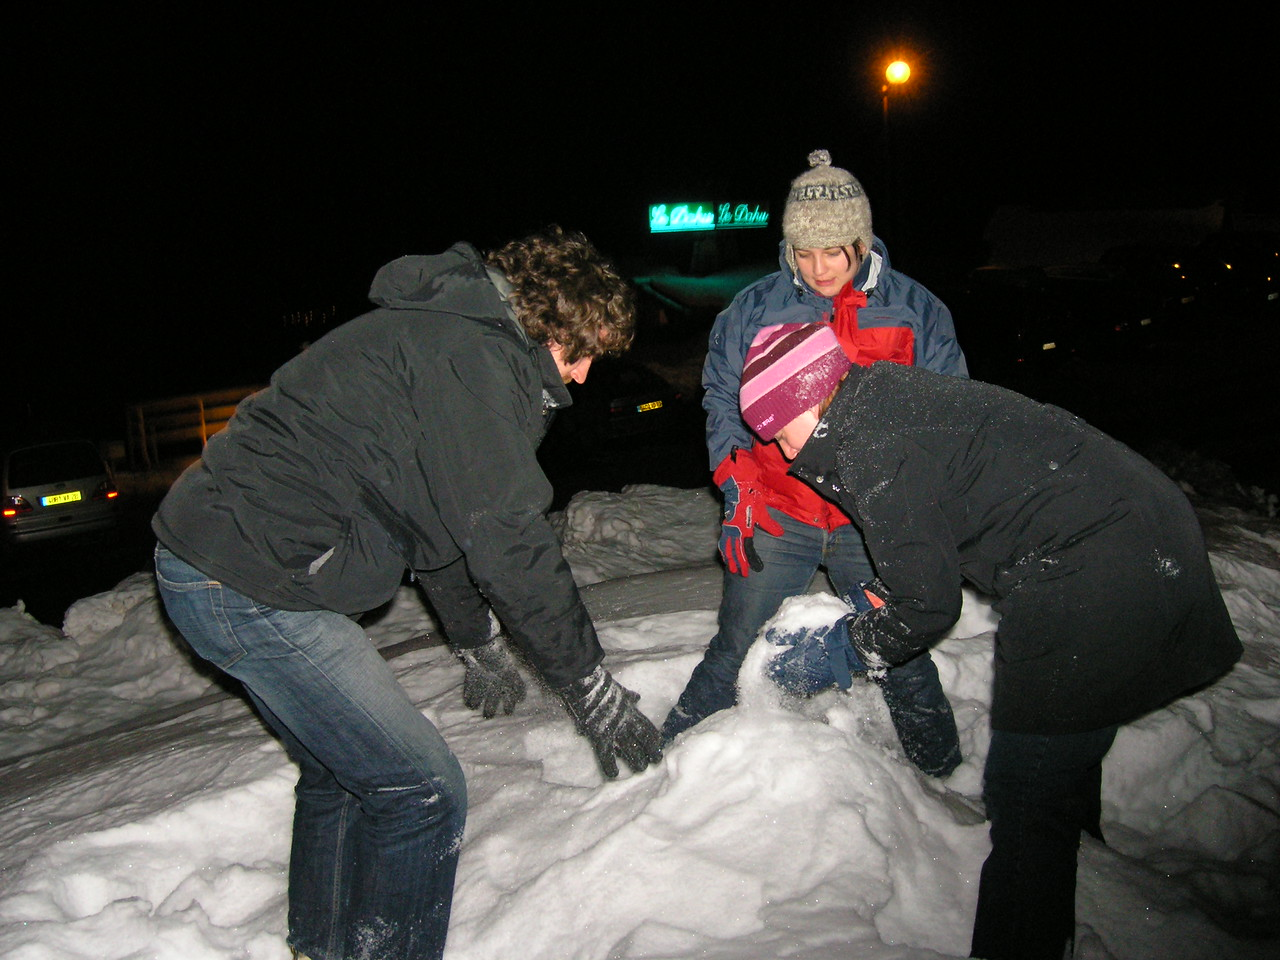 Building a snow person